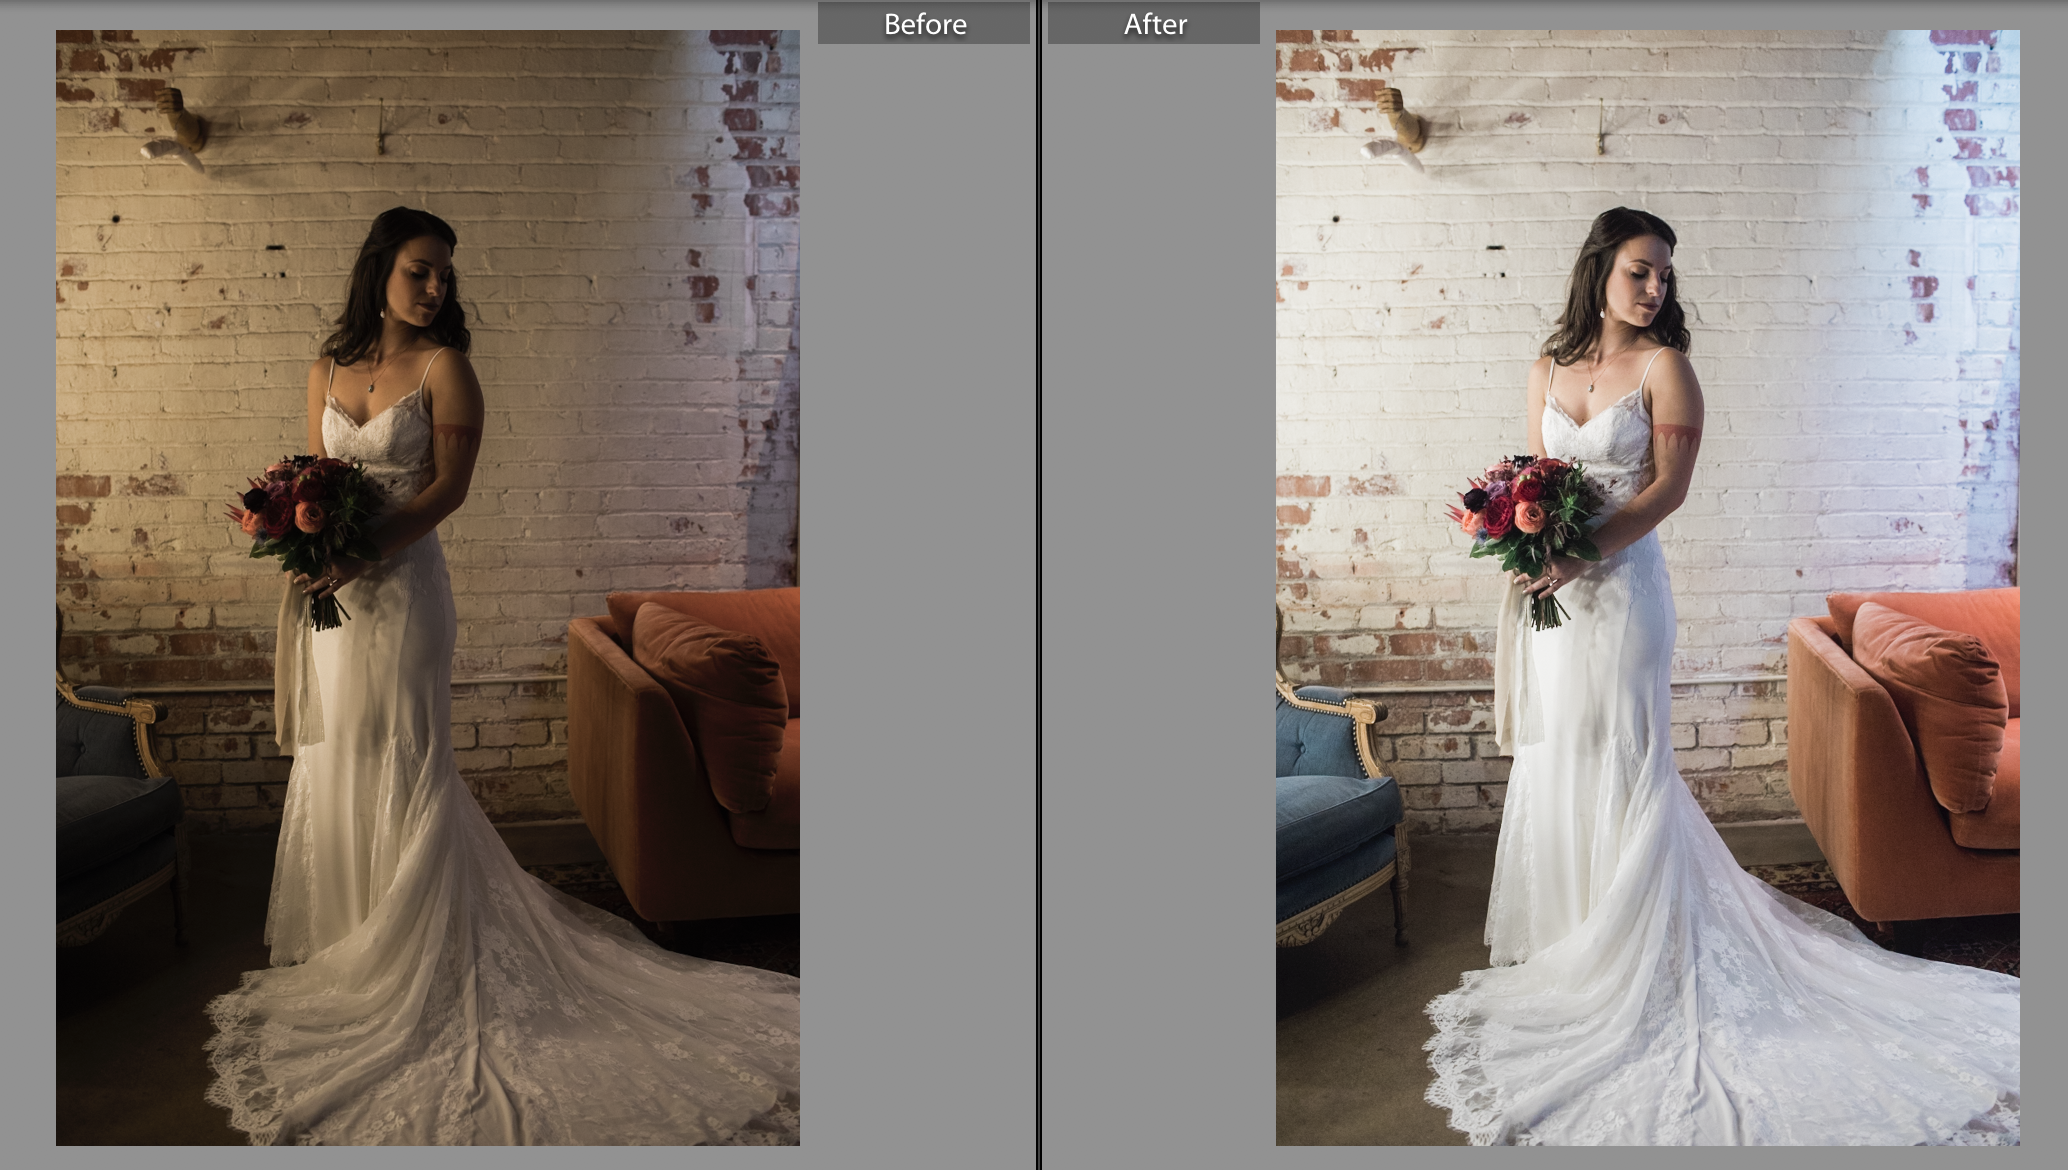 RAW, unedited file on the left versus the edited version on the right. I think it's obvious why I would never deliver the RAW file here.